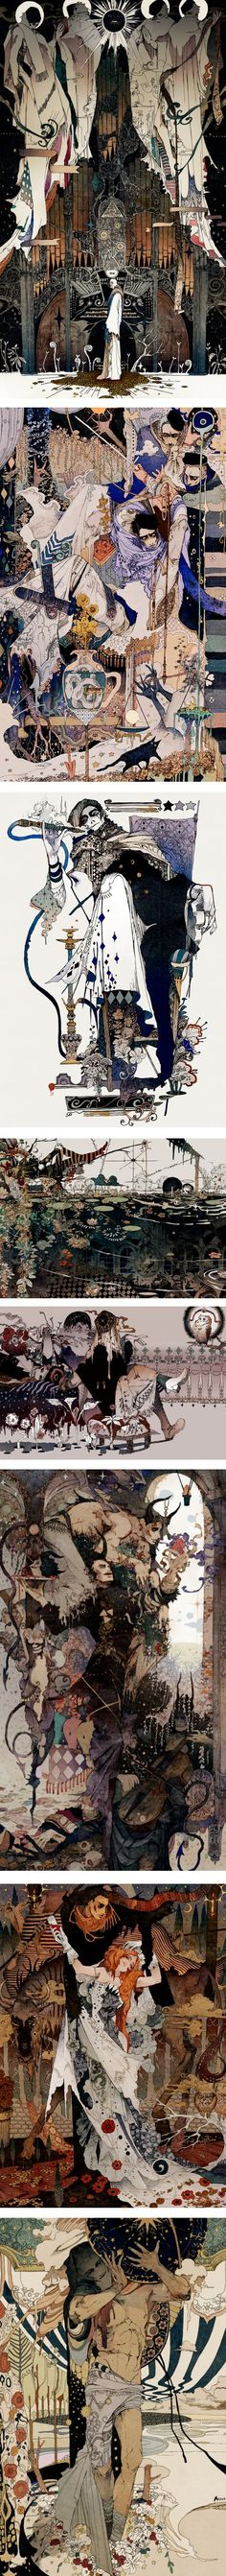 Akiya Kageichi | Lines and Colors :: a blog about drawing, painting, illustration, comics, concept art and other visual arts